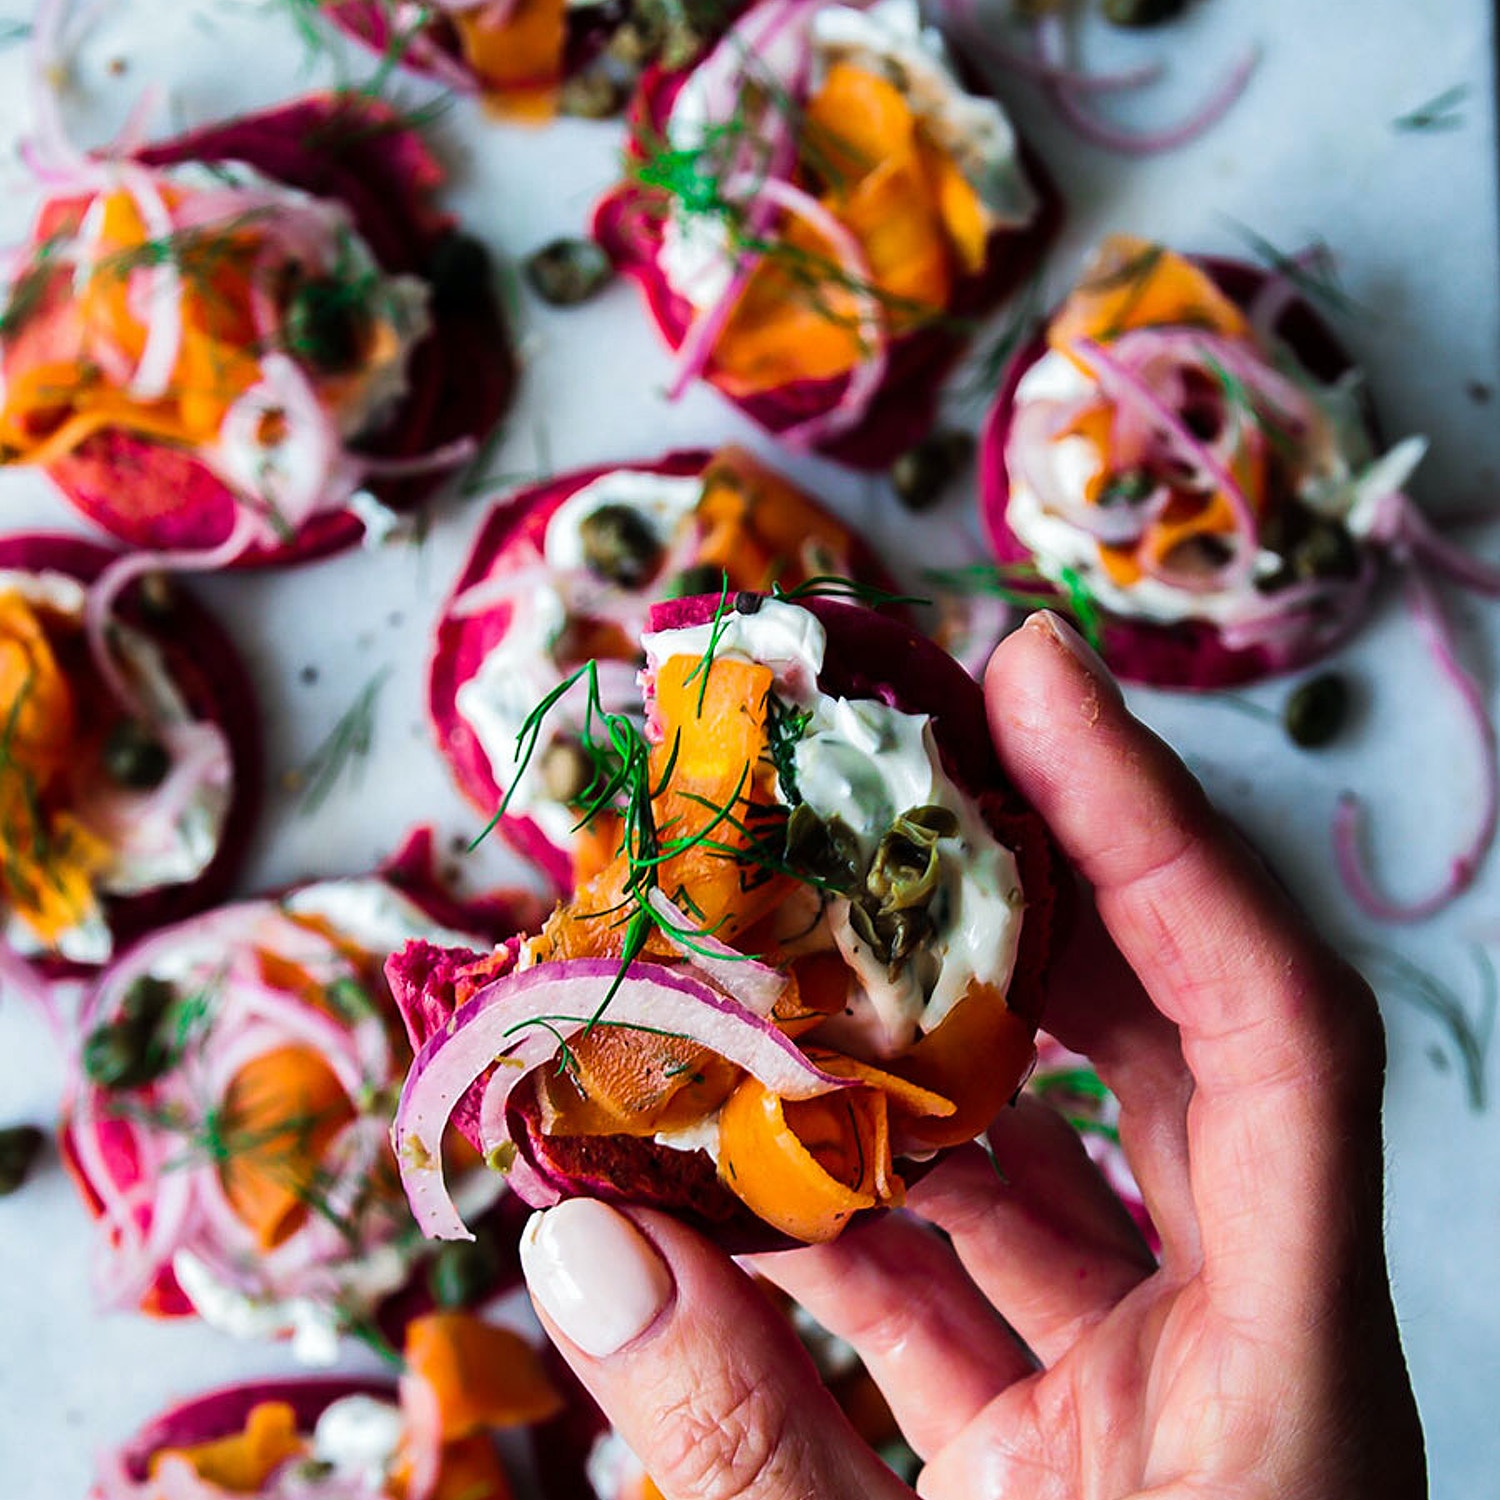 Beetroot Pancakes with Carrot Lox and all the Trimmings